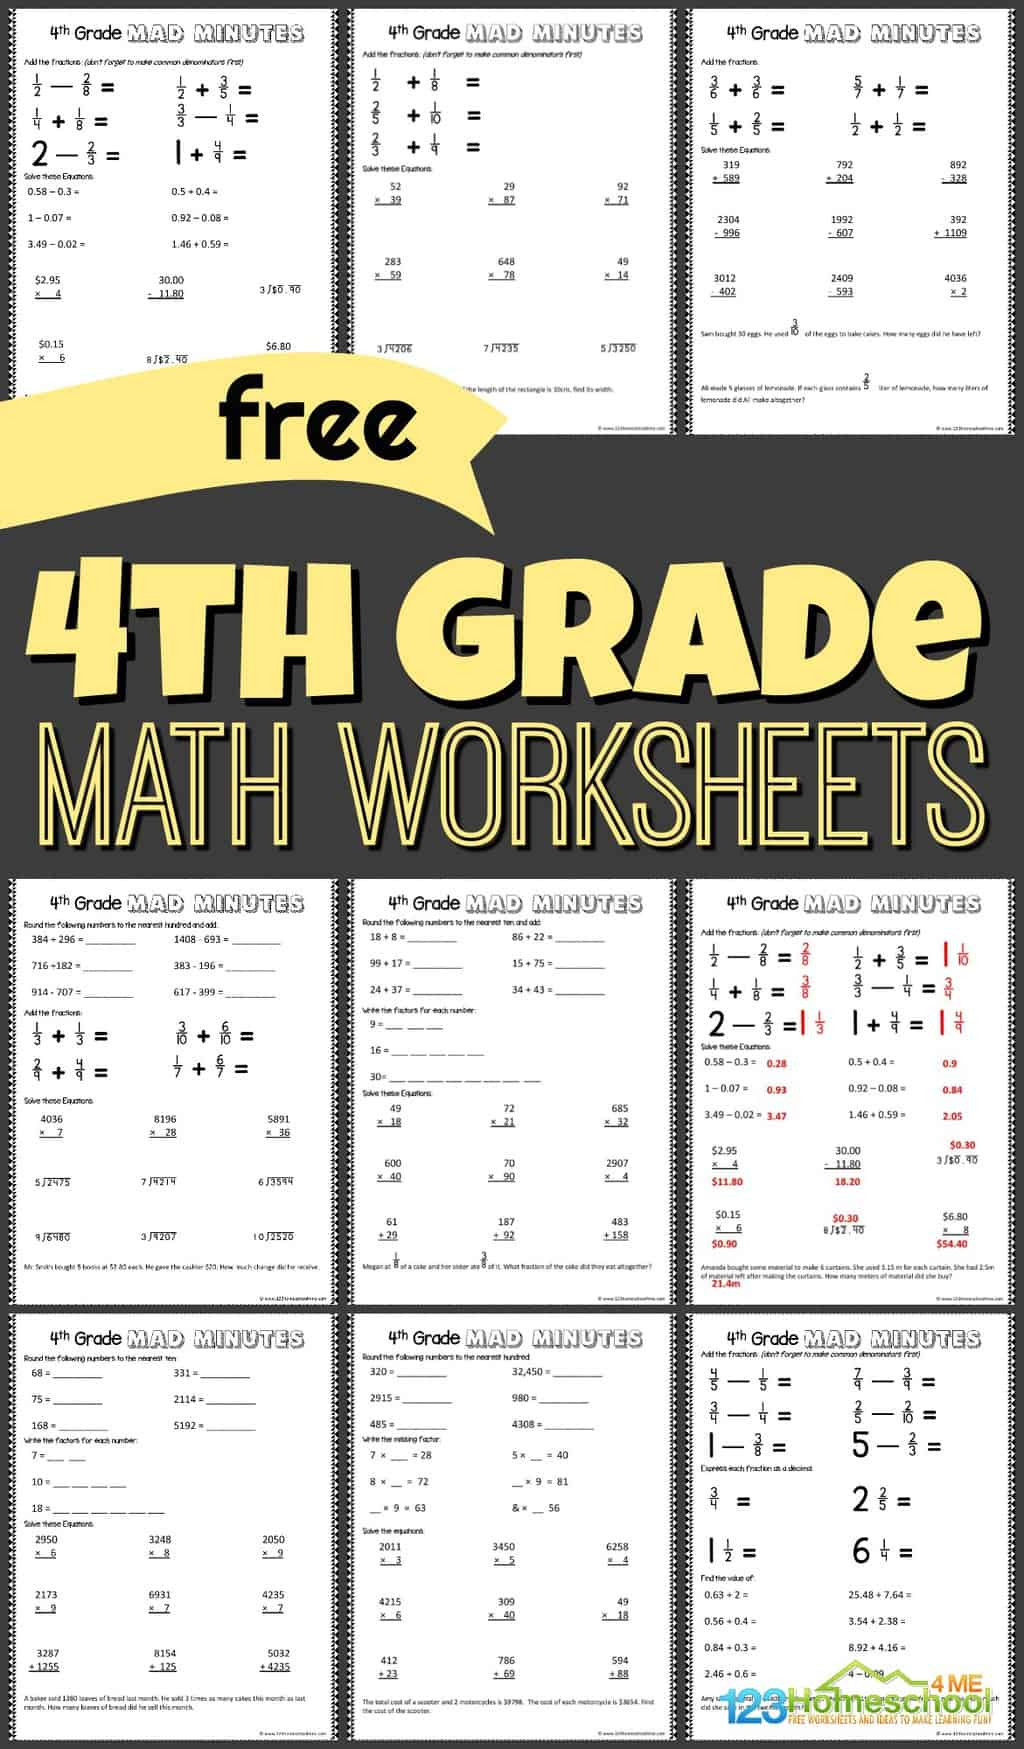 Missing Addend Worksheets 1st Grade Free 4th Grade Math Worksheets Summer Functions Worksheet